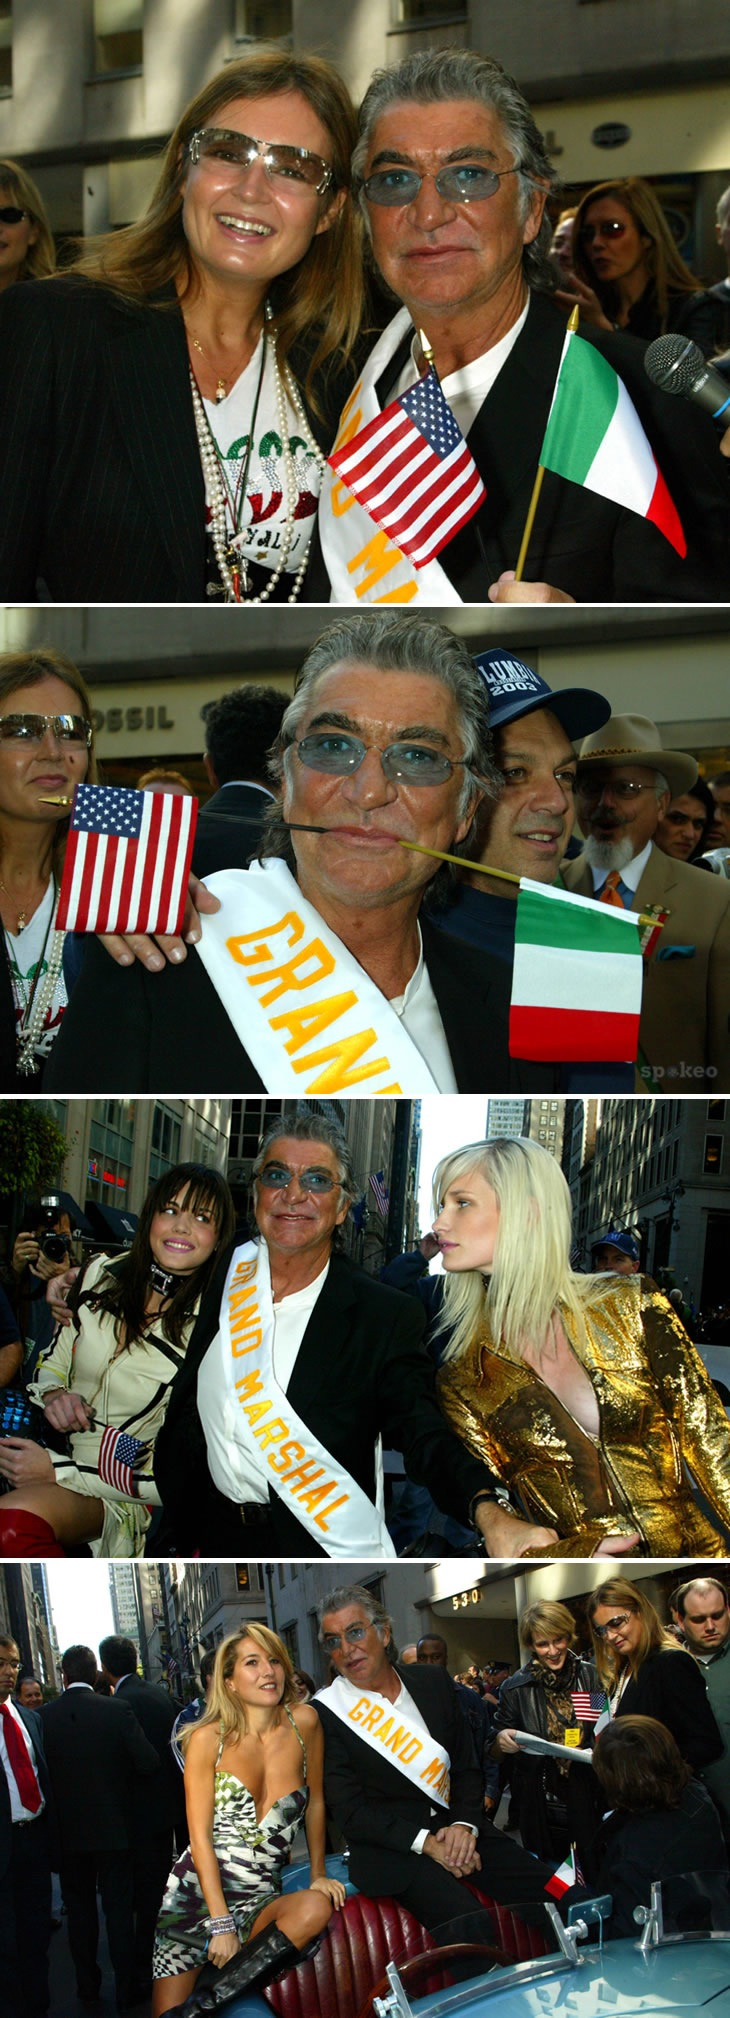 Roberto Cavalli - 59th Columbus Day